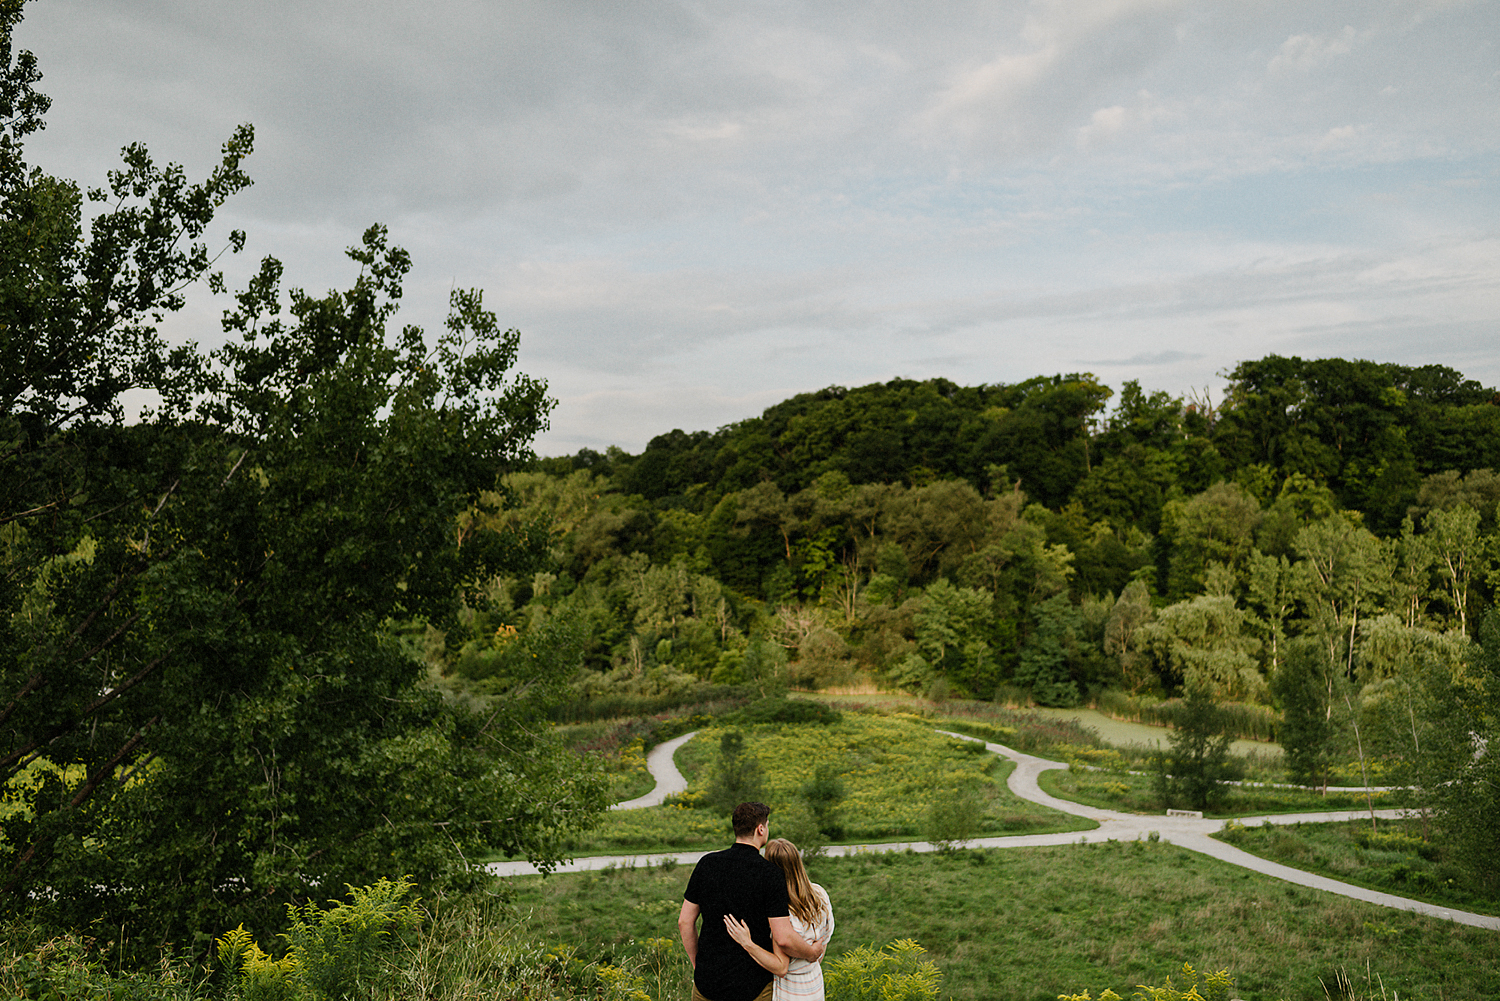 Best-Engagement-Photos-Toronto-Evergreen-Brickworks-Analog-Film-Wedding-Photographers-Toronto-Ontario-Canada-Destination-Wedding-Photographer-Sunrise-Lifestyle-Photo-Session-inspo.jpg